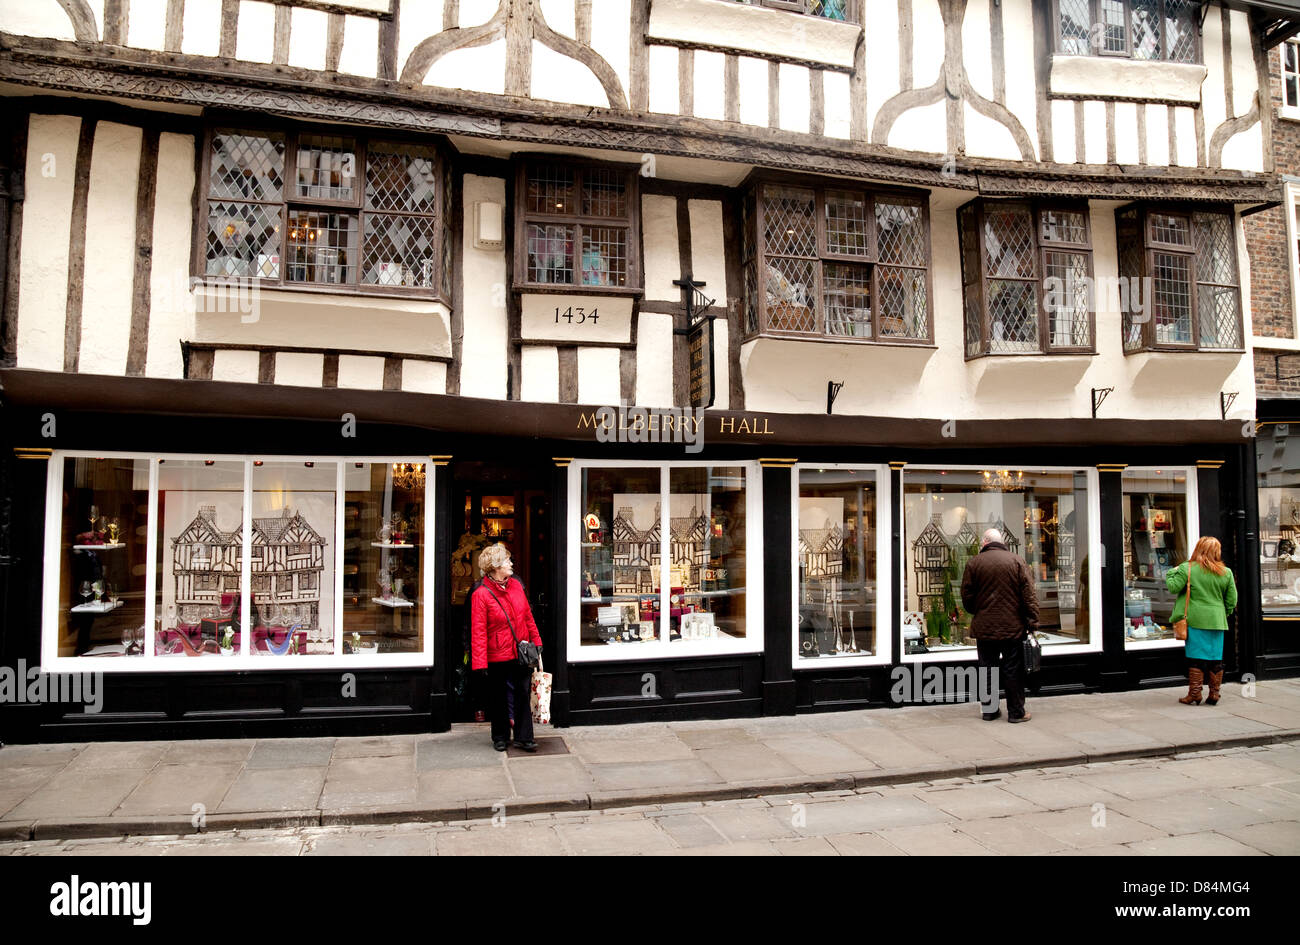 The 15th century Mulberry Hall tudor medieval building, Stonegate, York Yorkshire UK - Stock Image